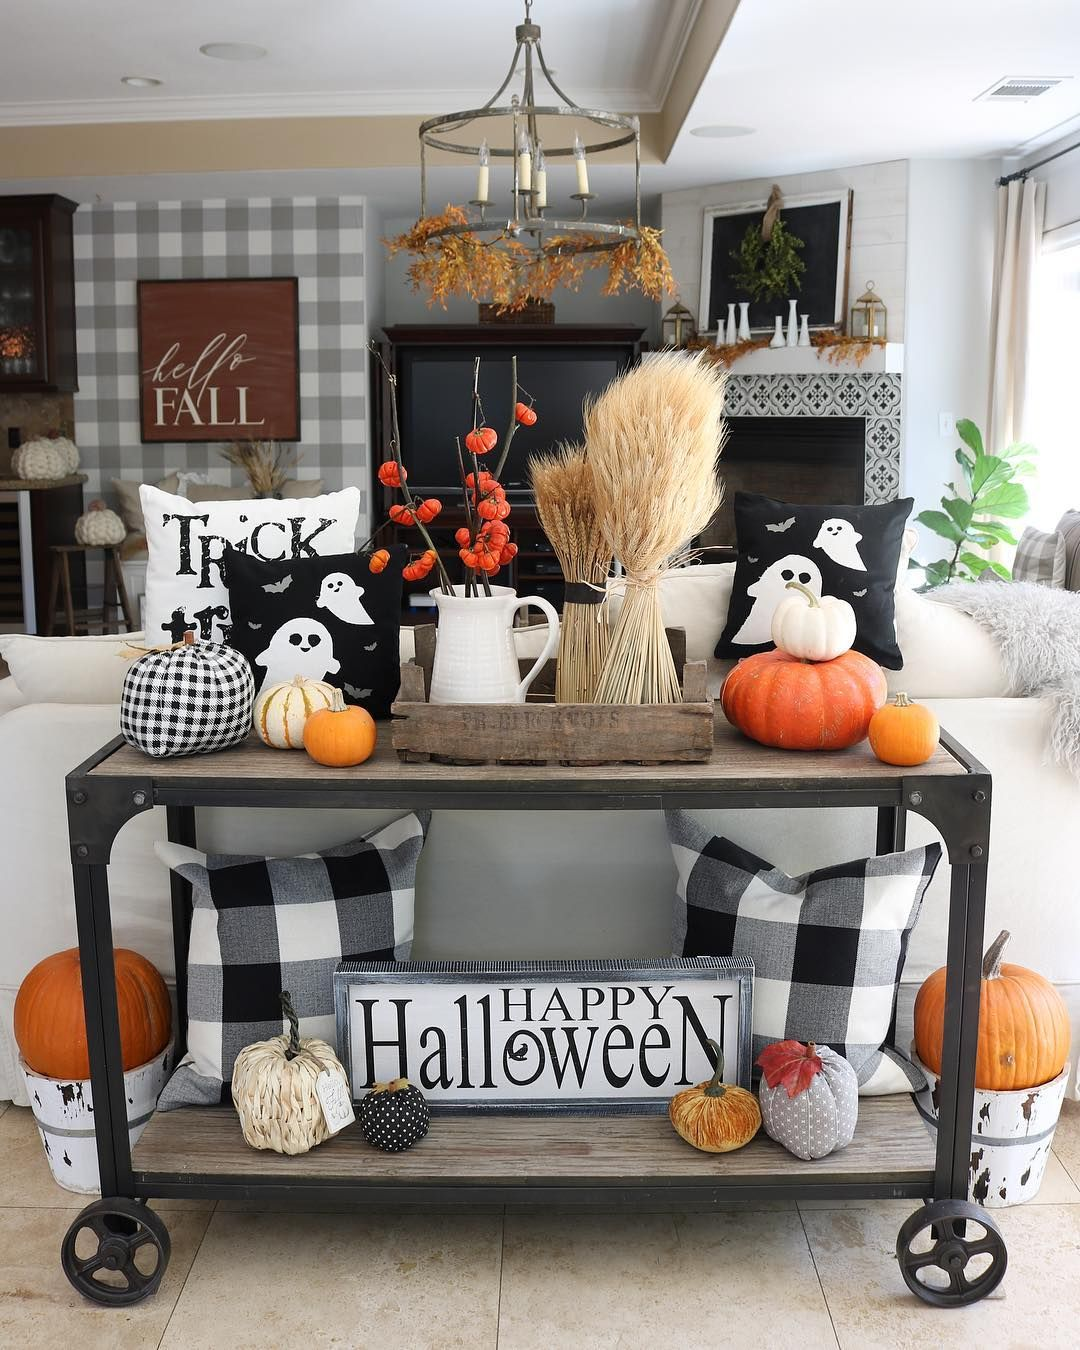 27 DIY Halloween Decorations That Are Cheap and Easy To Make | The Mummy Front